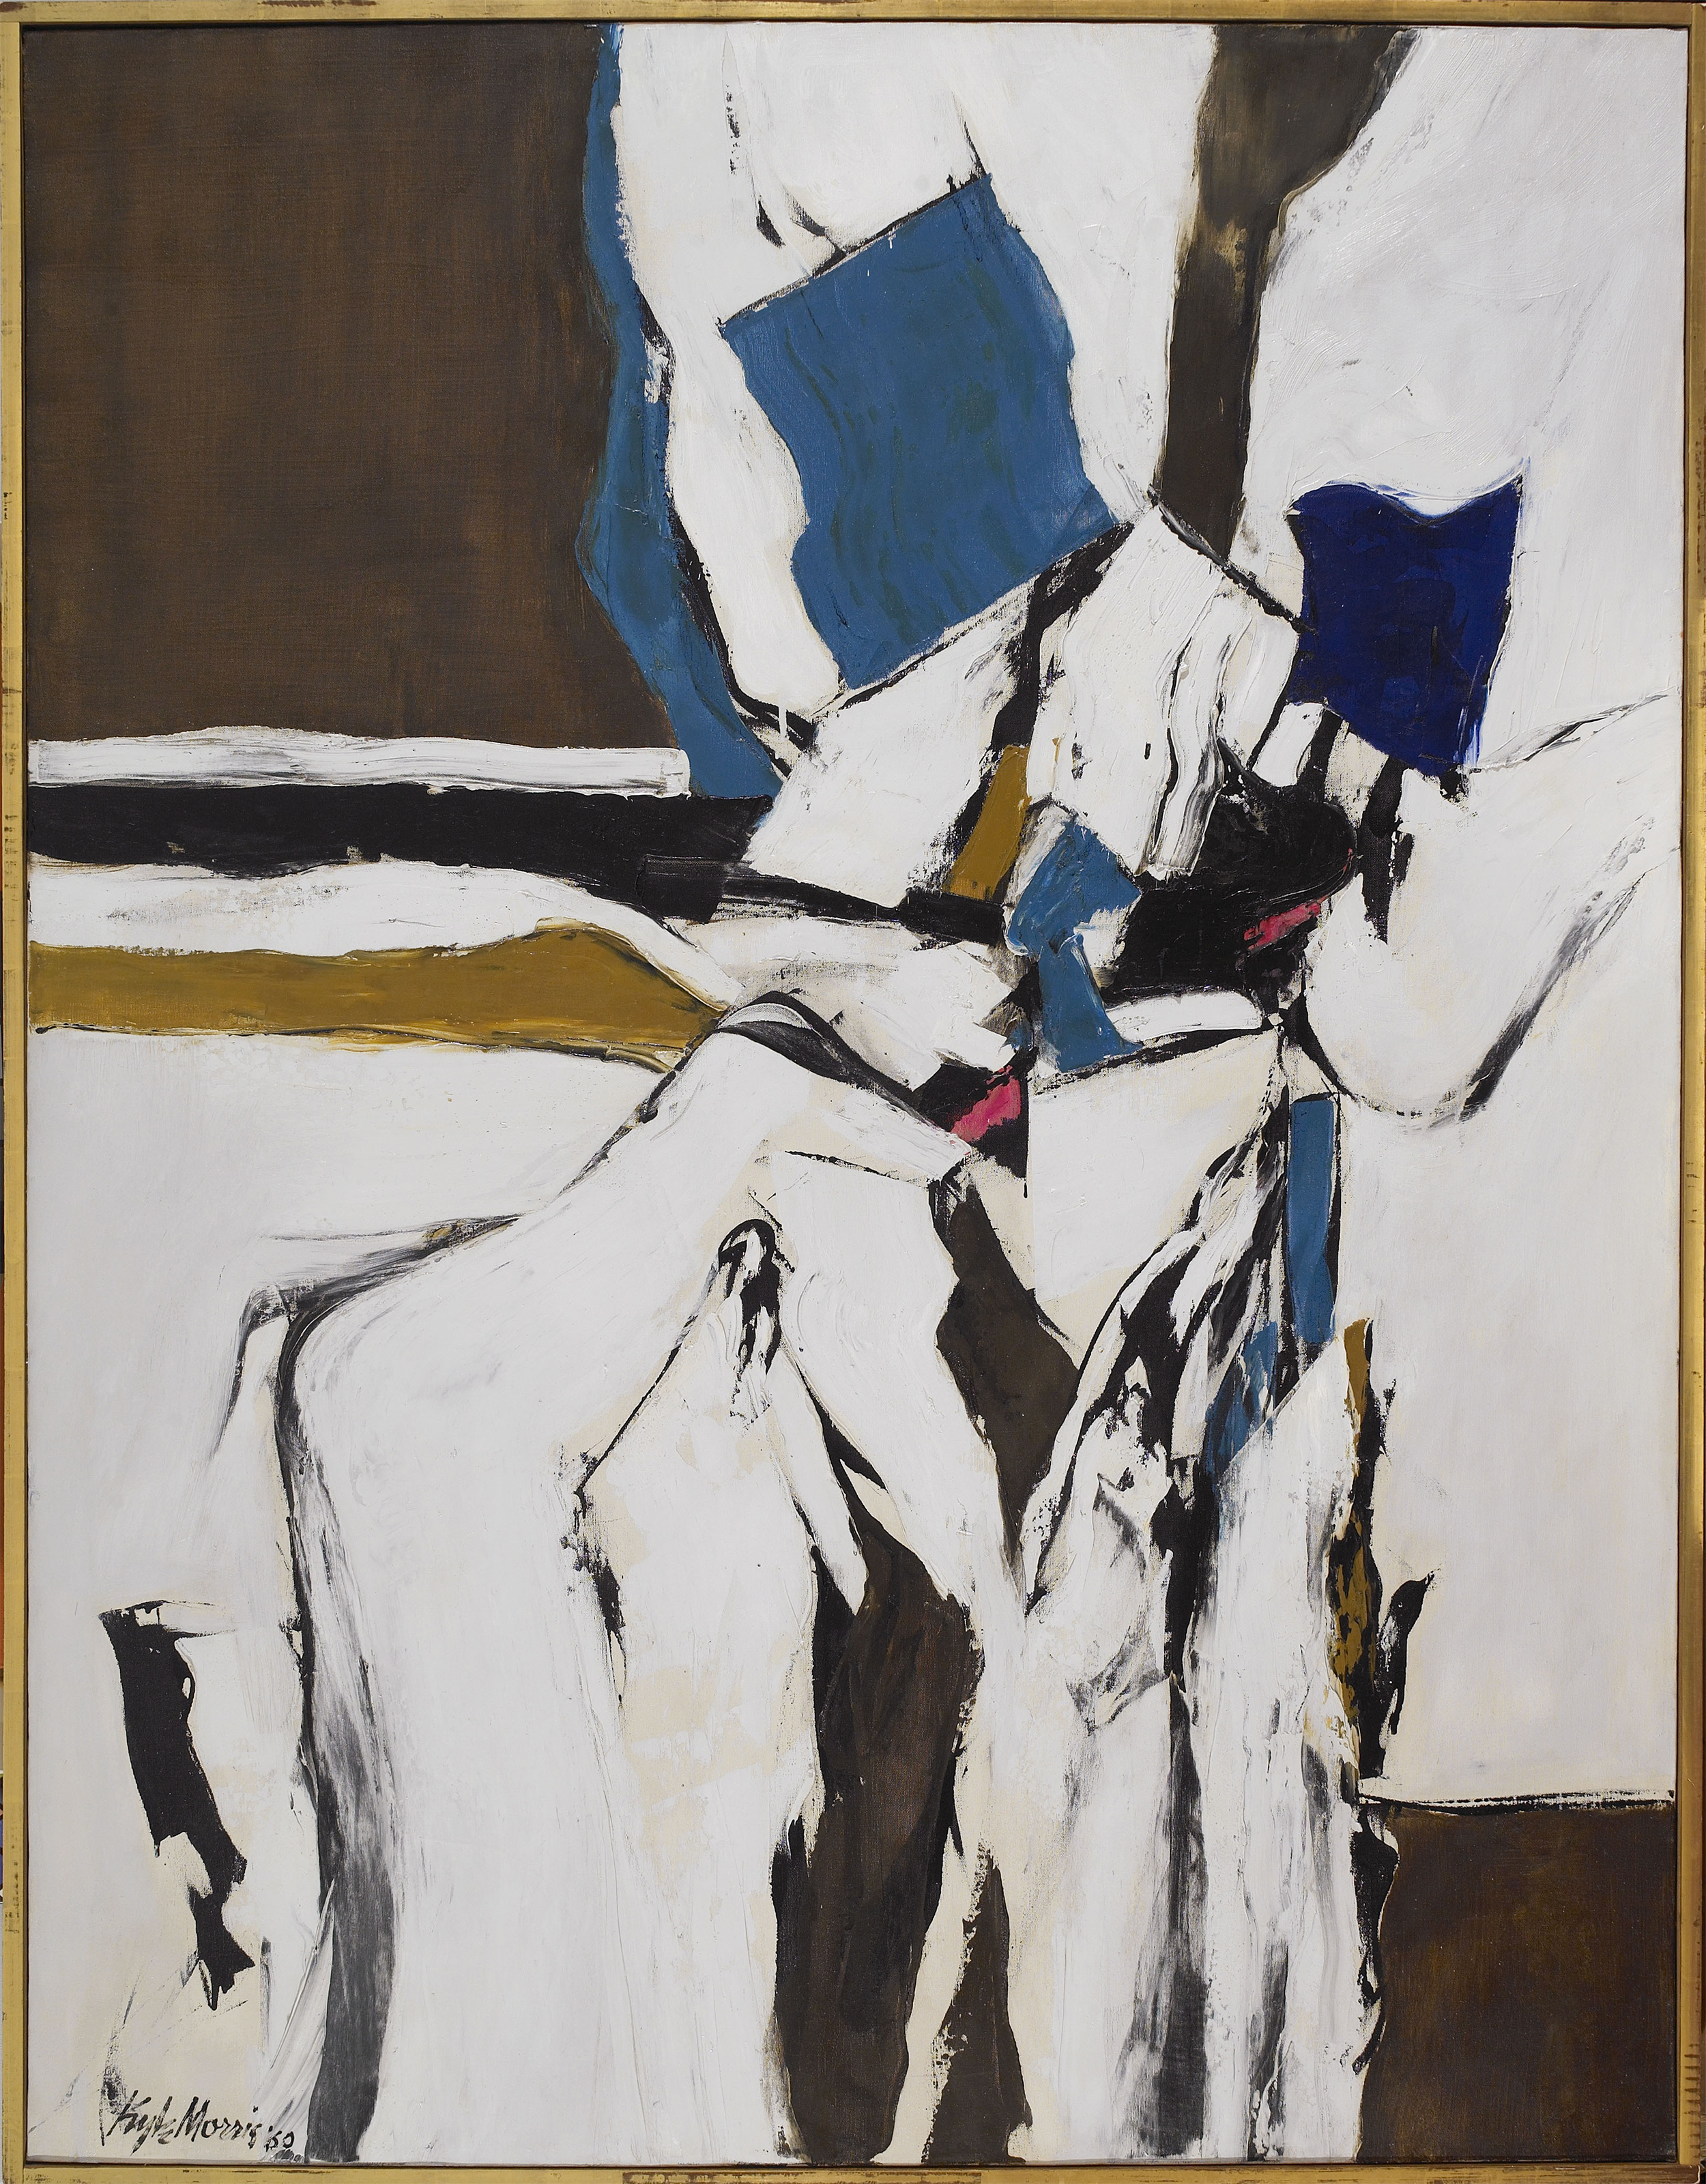 Untitled,   Oil on canvas, 1960, 62 1/2 x 48 inches